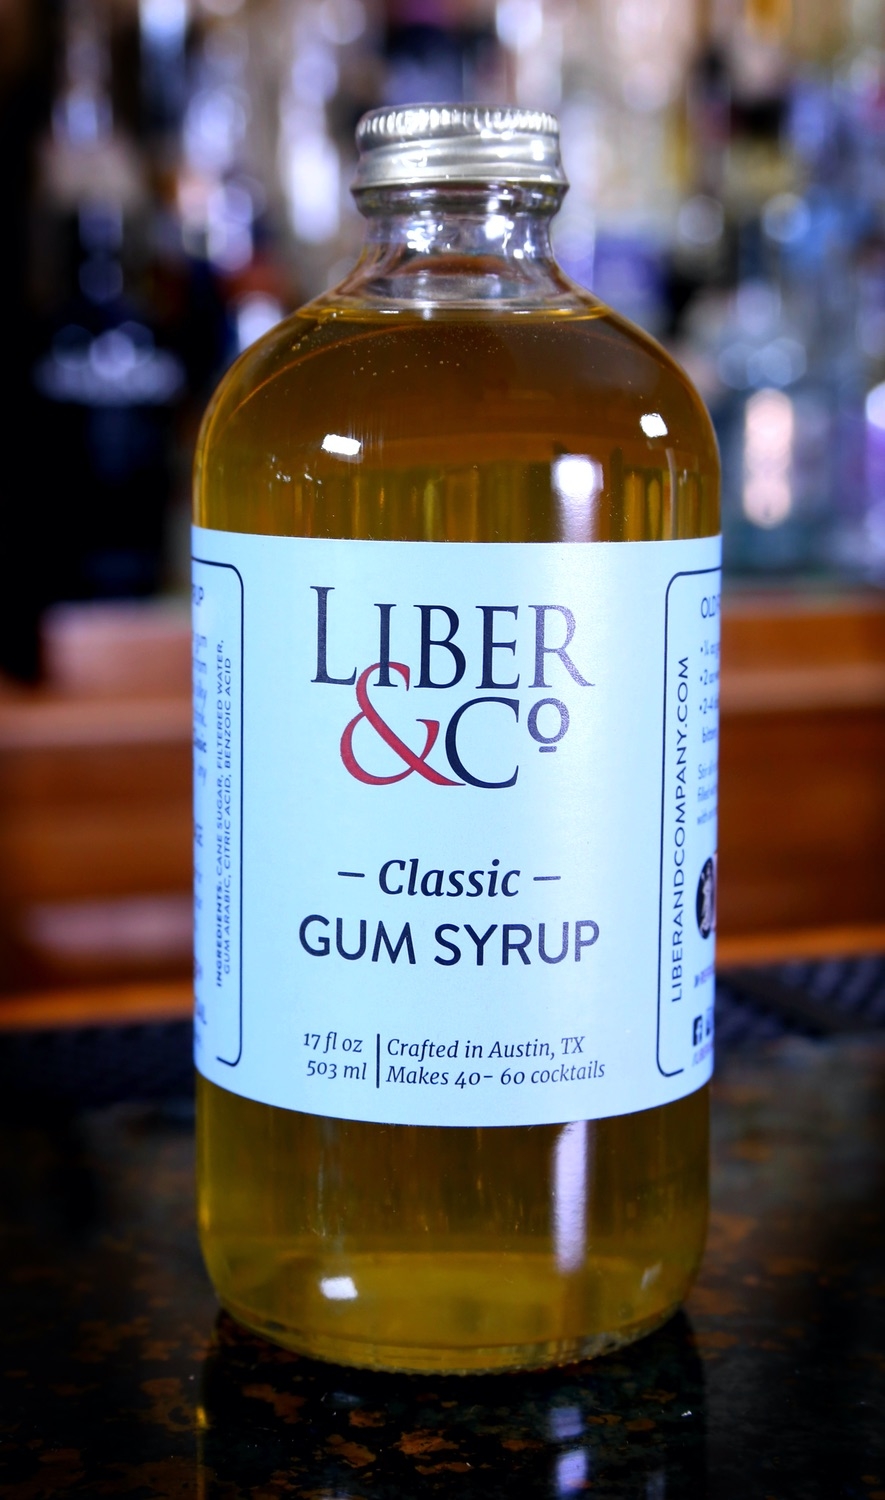 Liber & Co. Classic Gum Syrup / Gomme Syrup, 17 oz